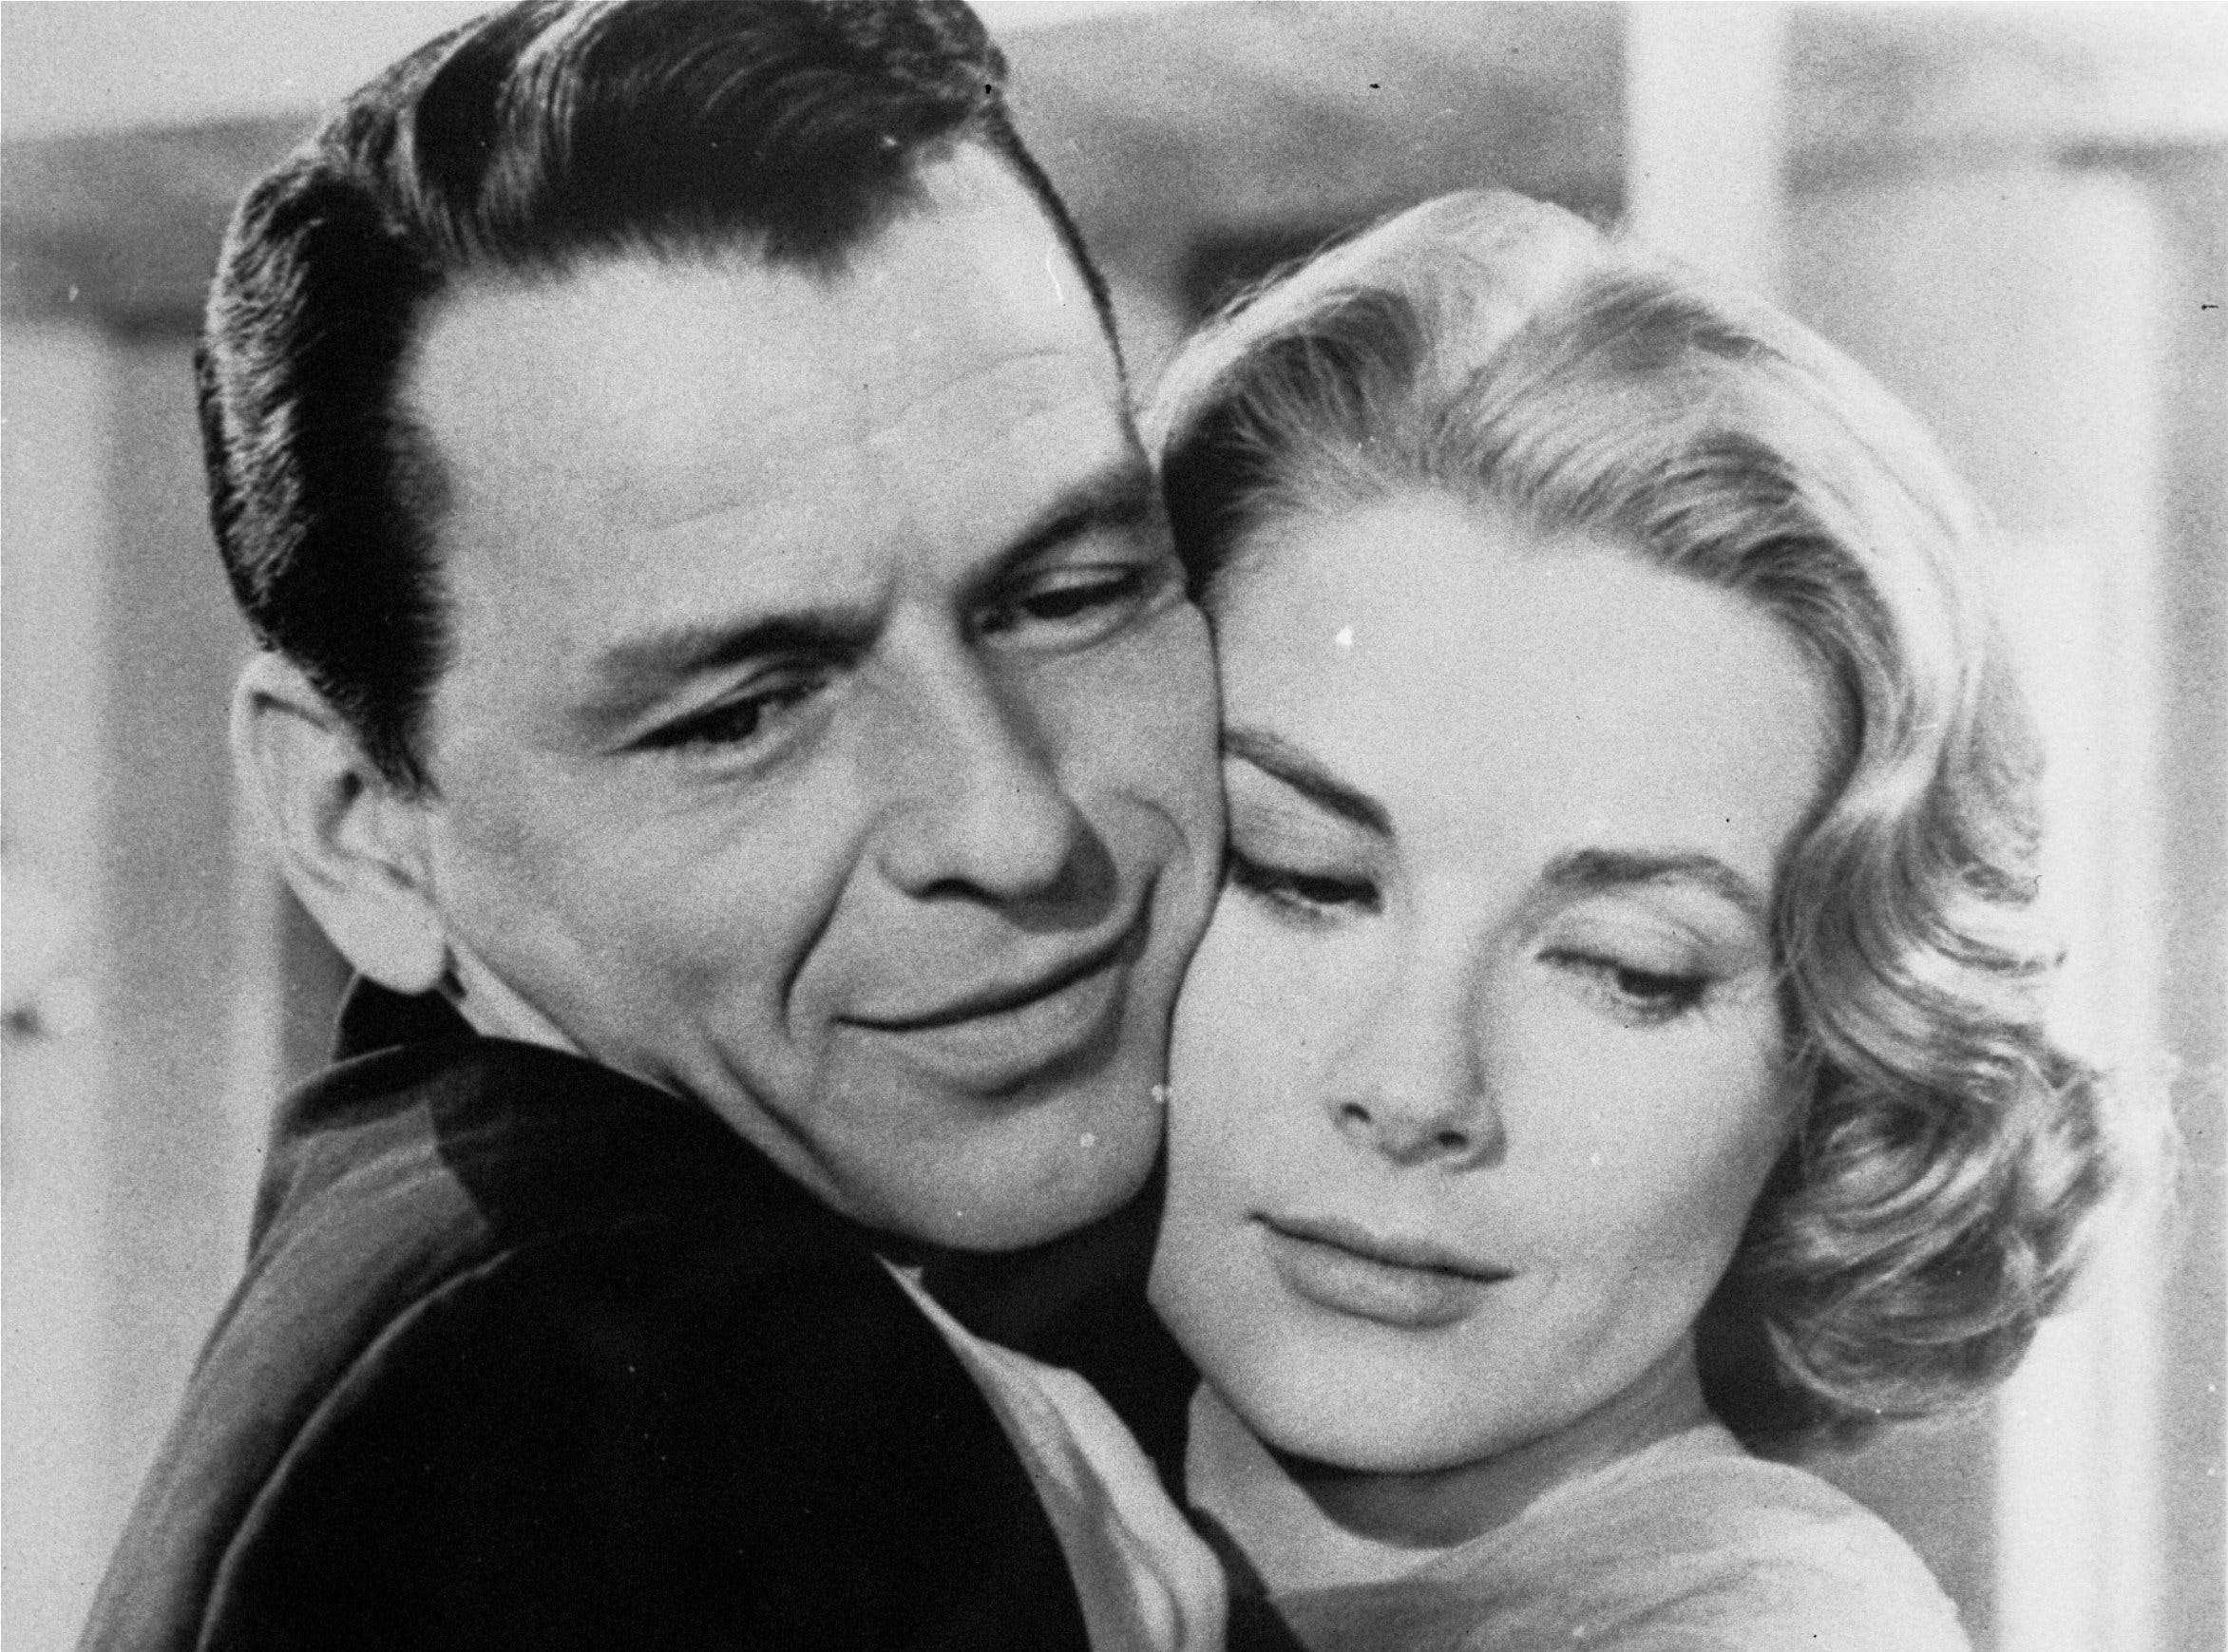 Frank Sinatra and Grace Kelly embrace in a scene from the 1956 film 'High Society.' The film is a favorite for Jonathan and Alex Chapman of Cherry Hill, and actually inspired them to honeymoon in Newport, Rhode Island, where the movie is set. Jonathan Chapman won a Turner Classic Movies contest to dedicate the movie to his wife on-air.